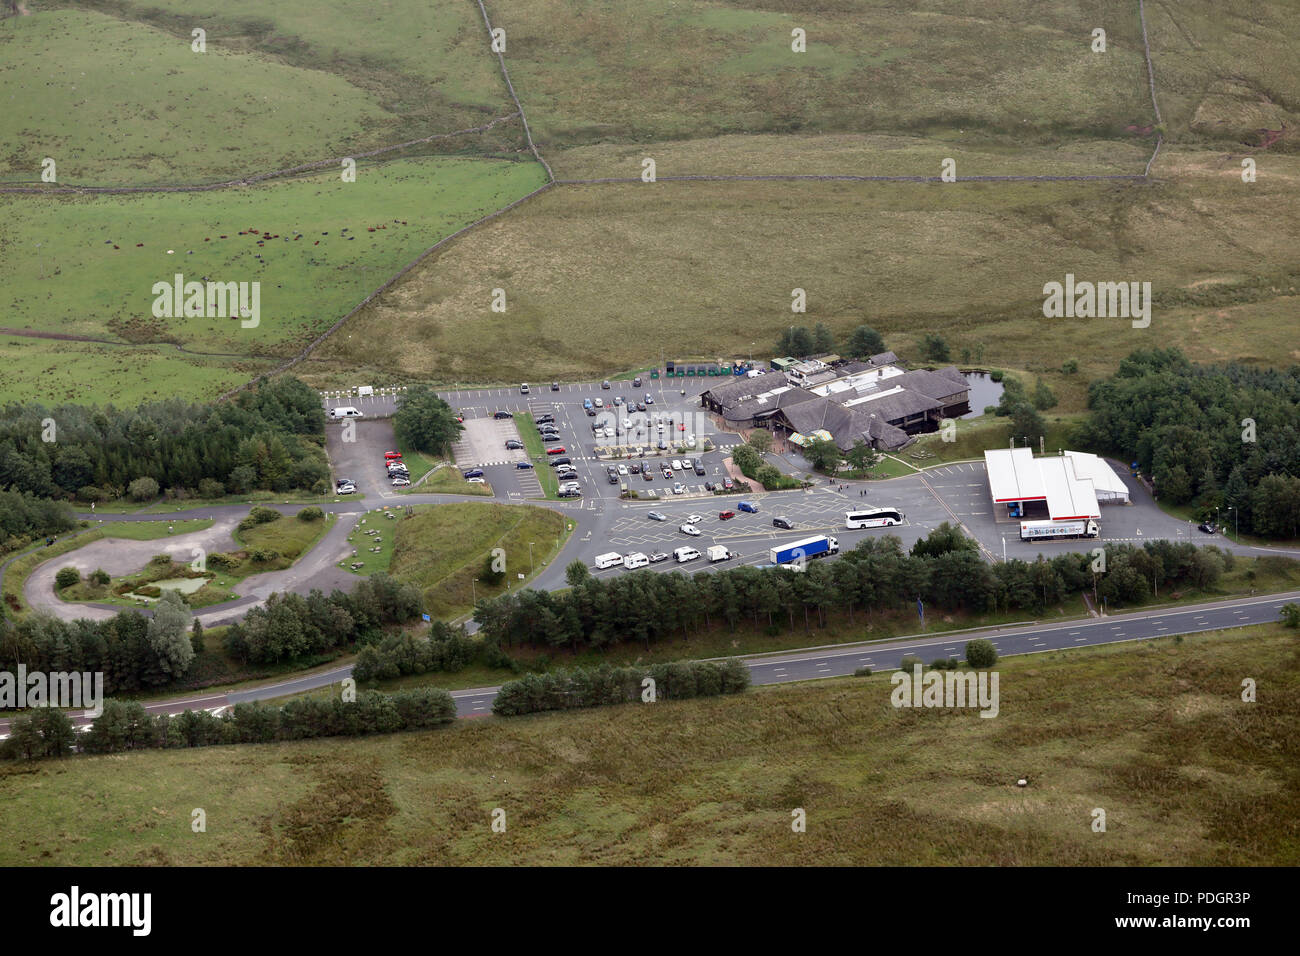 aerial view of Tebay Services Southbound on the M6 Motorway, Cumbria - Stock Image